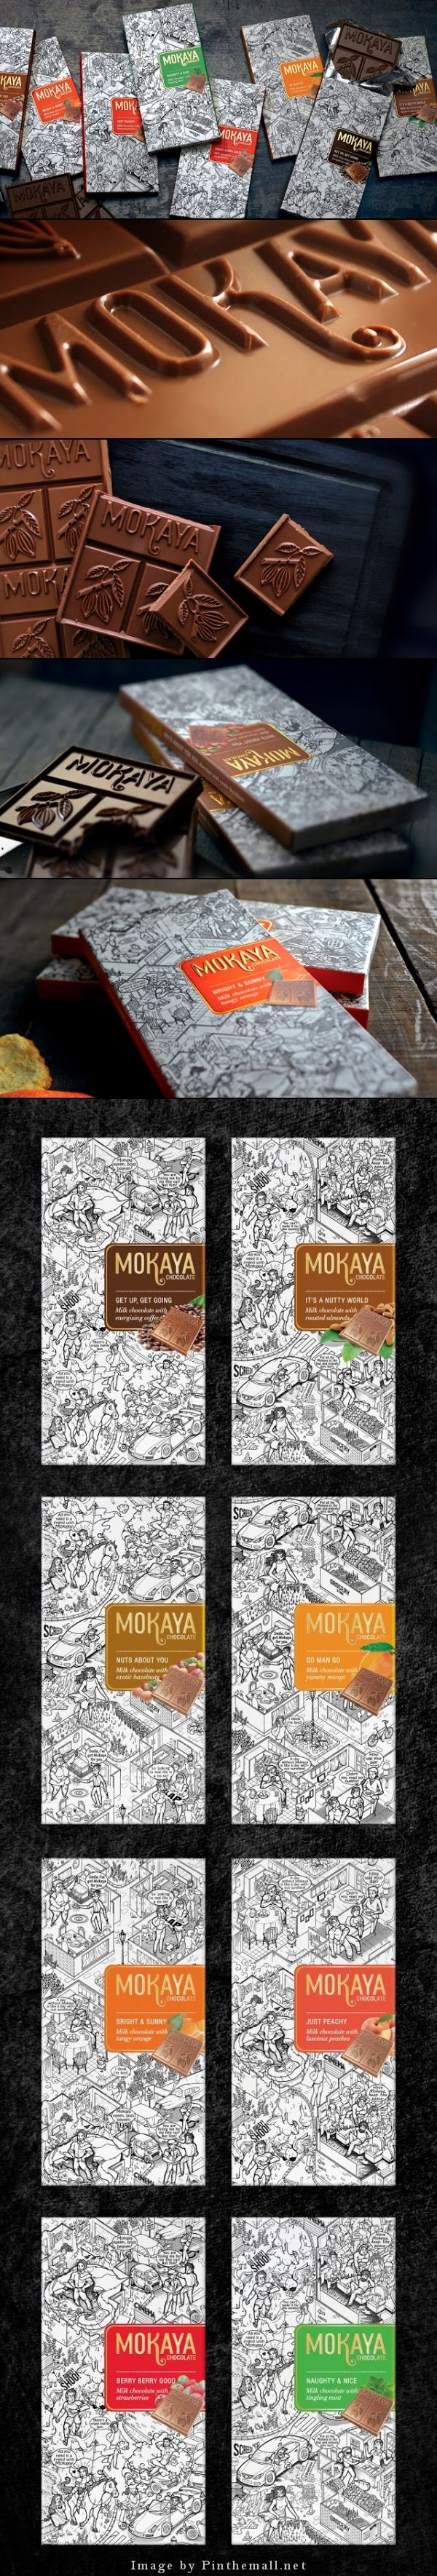 At Mokaya, we use higher levels of the world's most precious cocoa in our bars. That means our bars deliver a much more intense and complex taste experience. Our chocolate is uniquely crafted through a rigorous process that ensures a chocolate unparalleled in Malaysia.